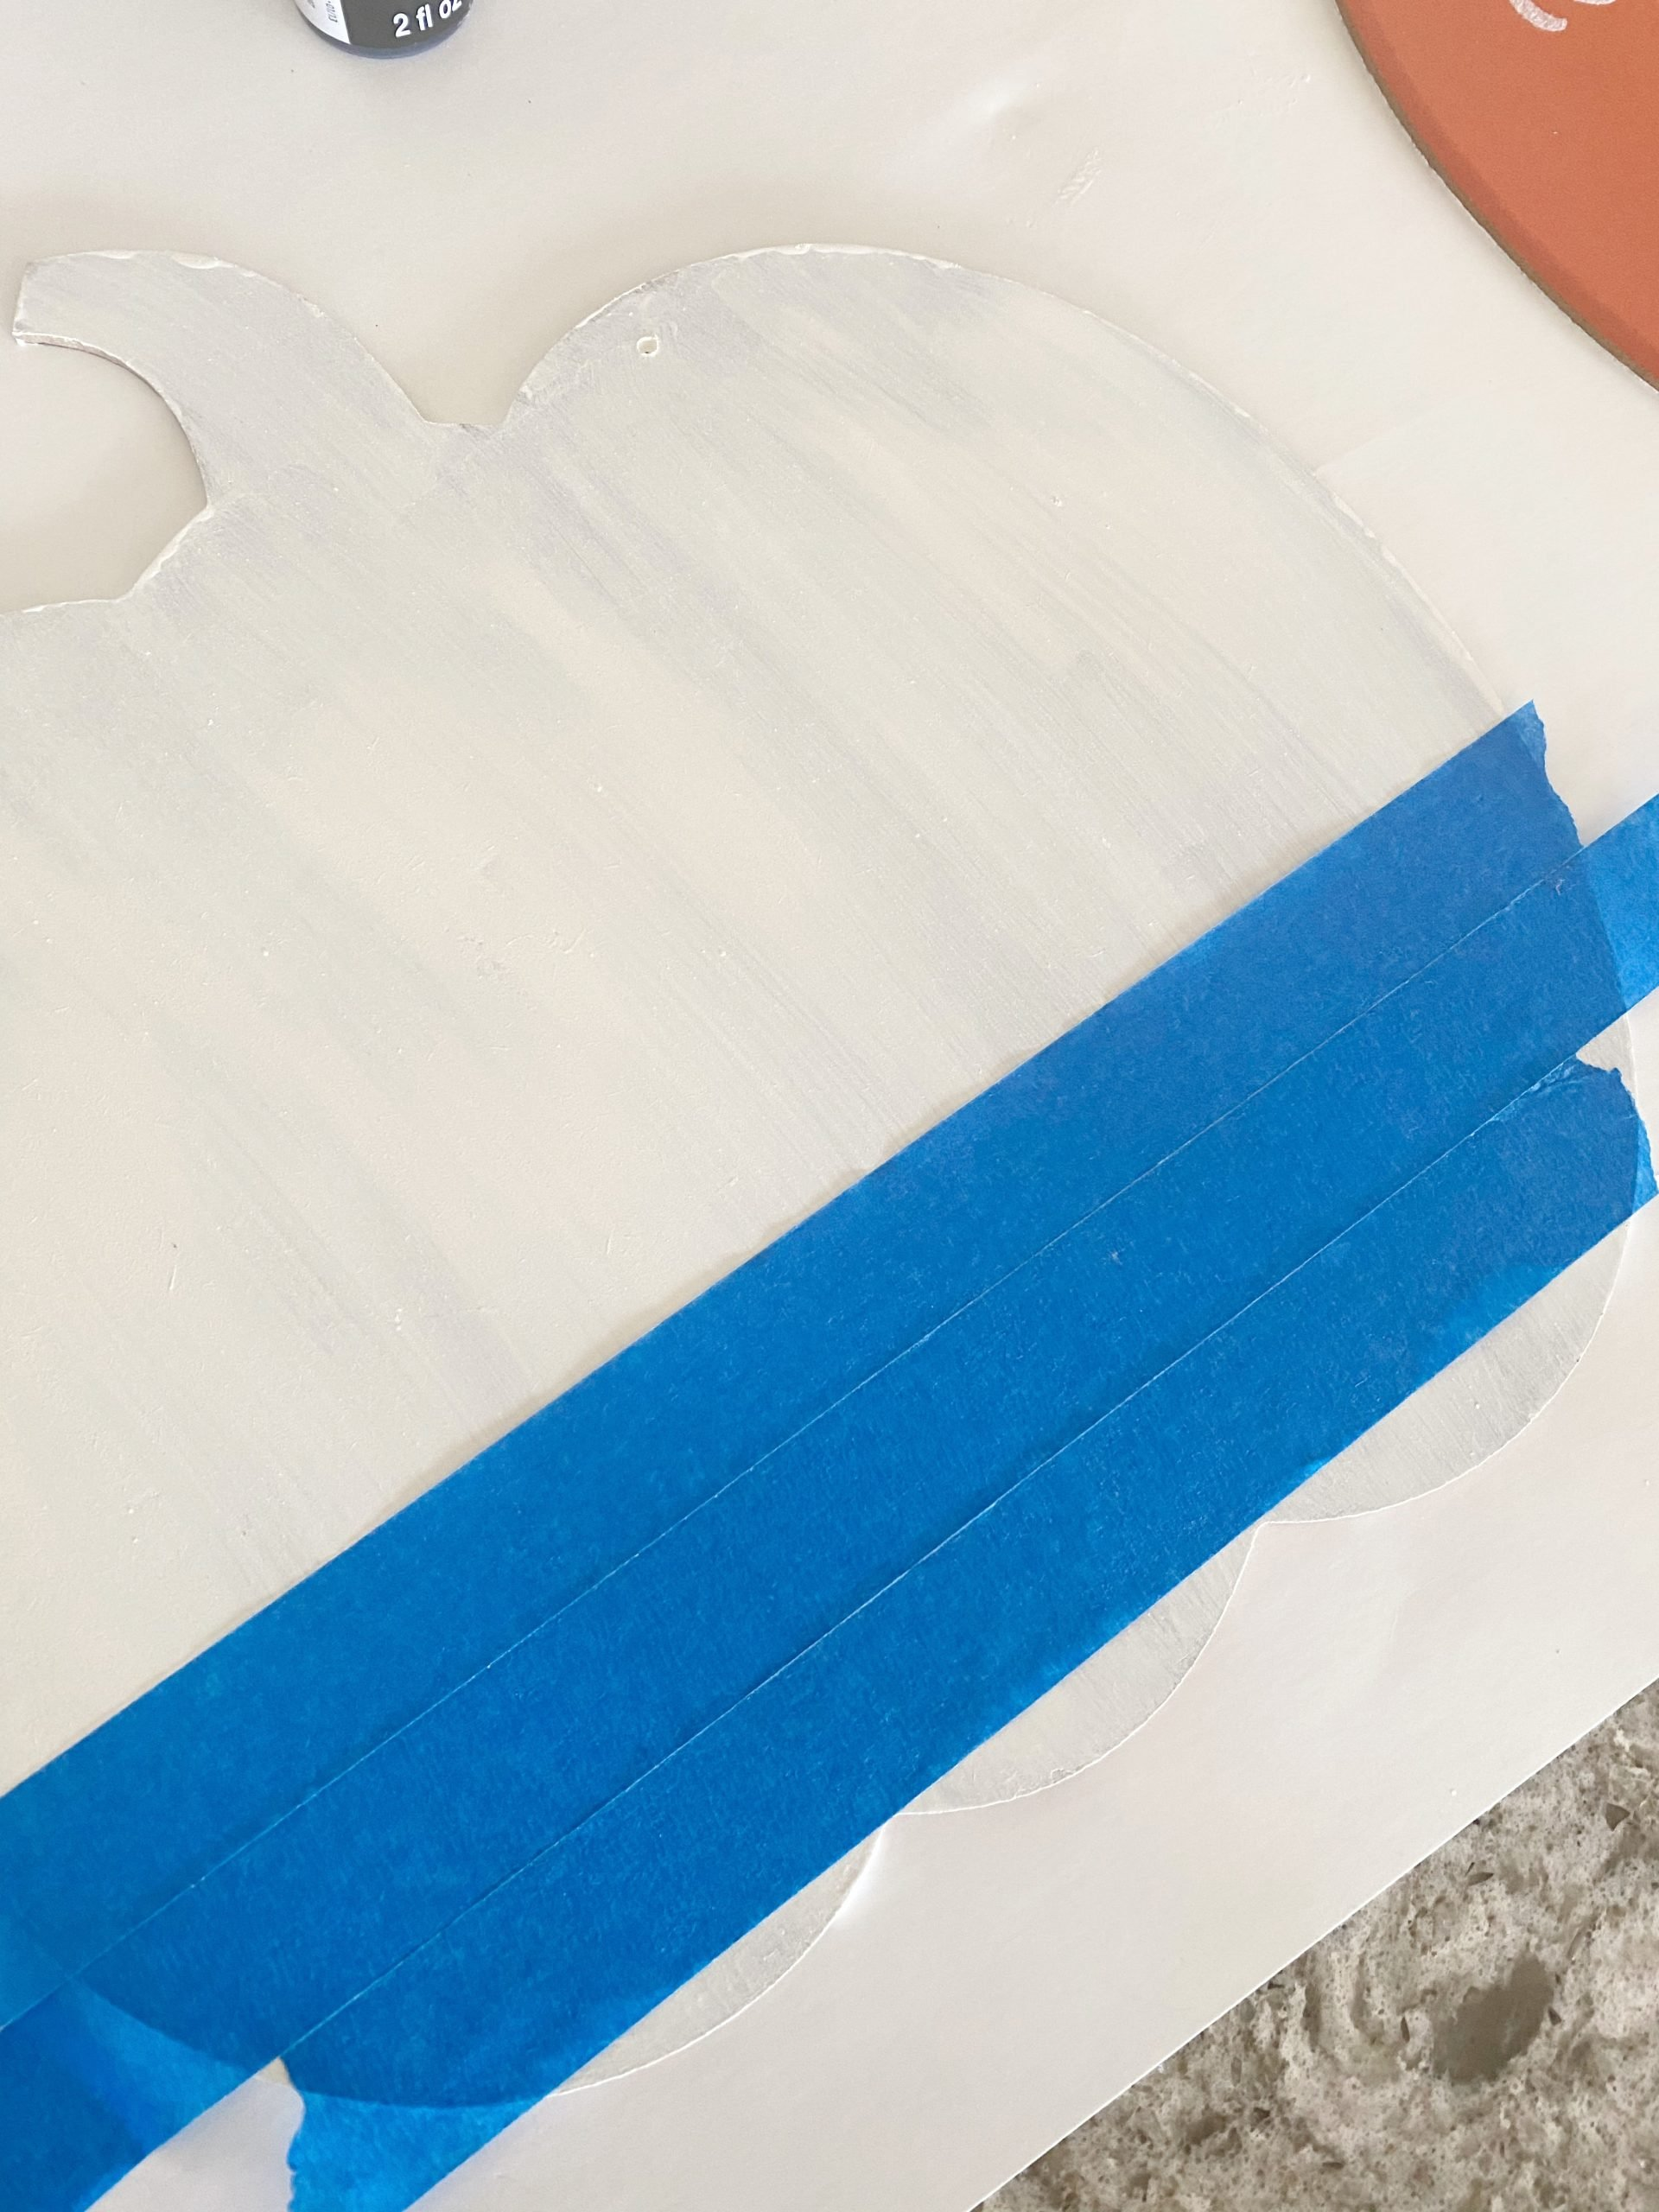 blue painter's tape on white pumpkin sign